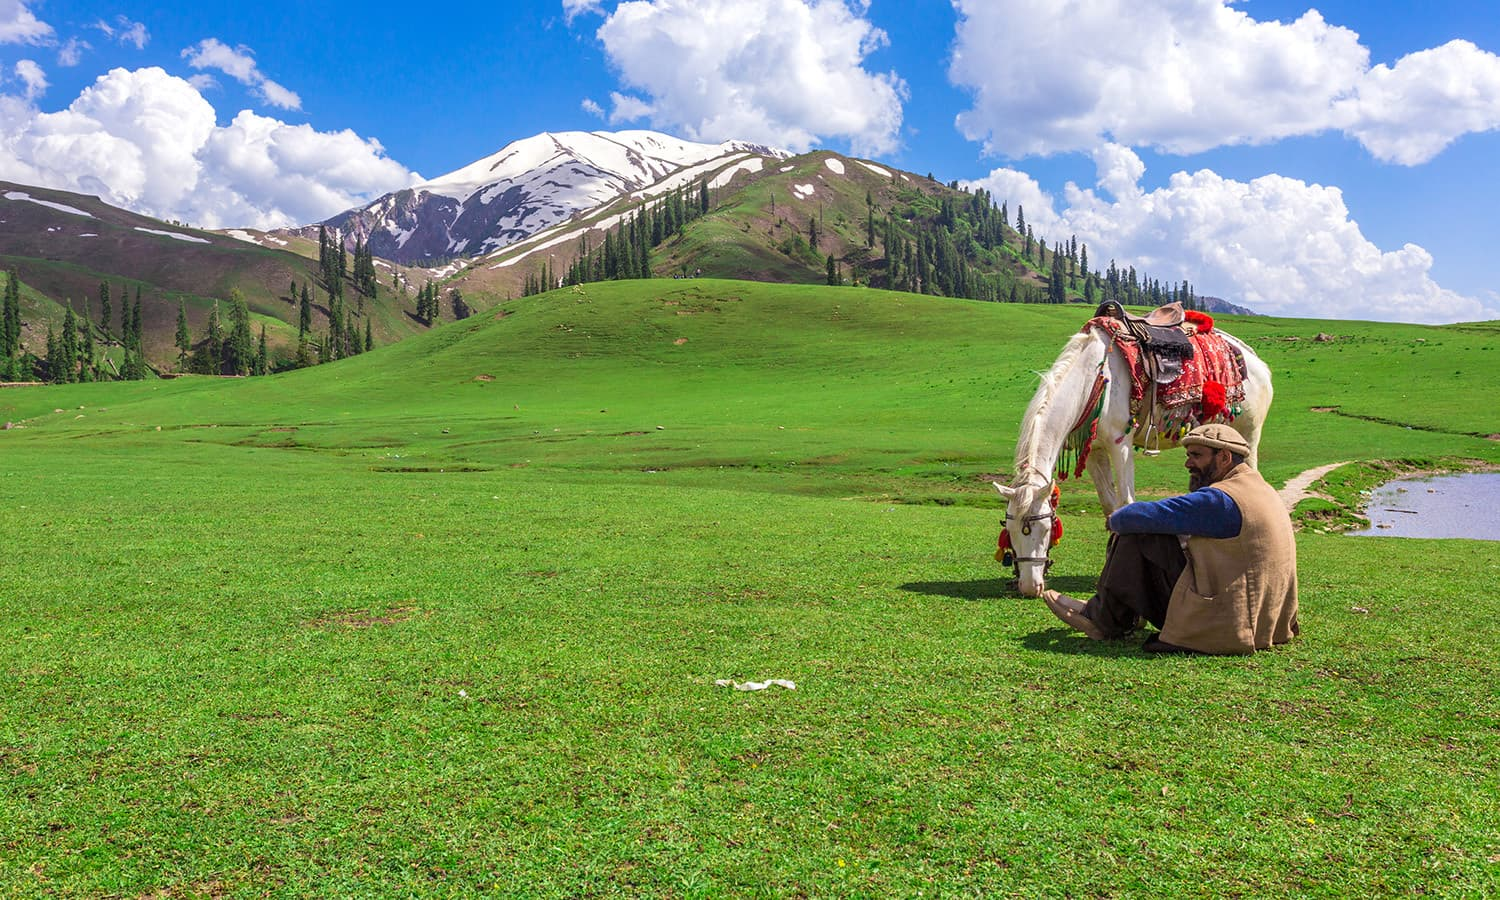 Payee Meadows and Makra Peak. Photo by Syed Bilal Javaid